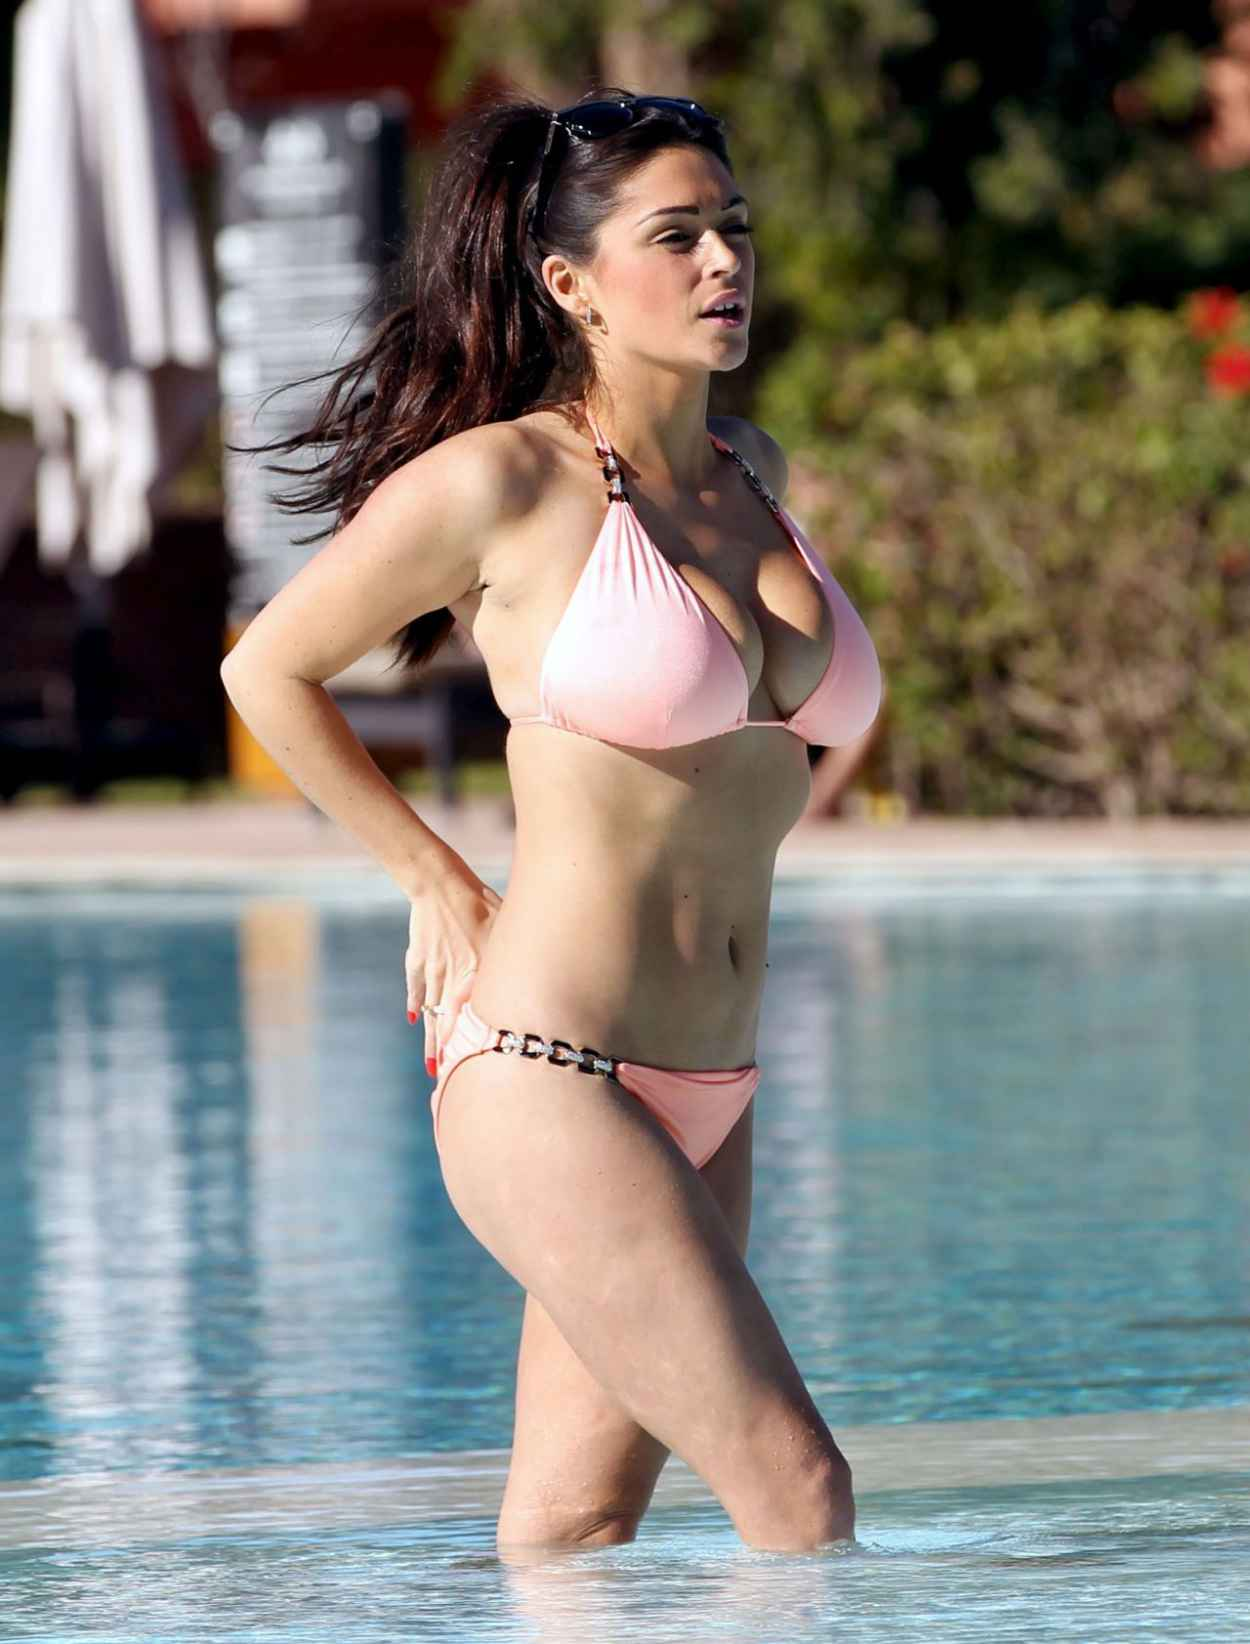 Casey Batchelor in a Bikini on the pool in Lanzarote Pic 3 of 35